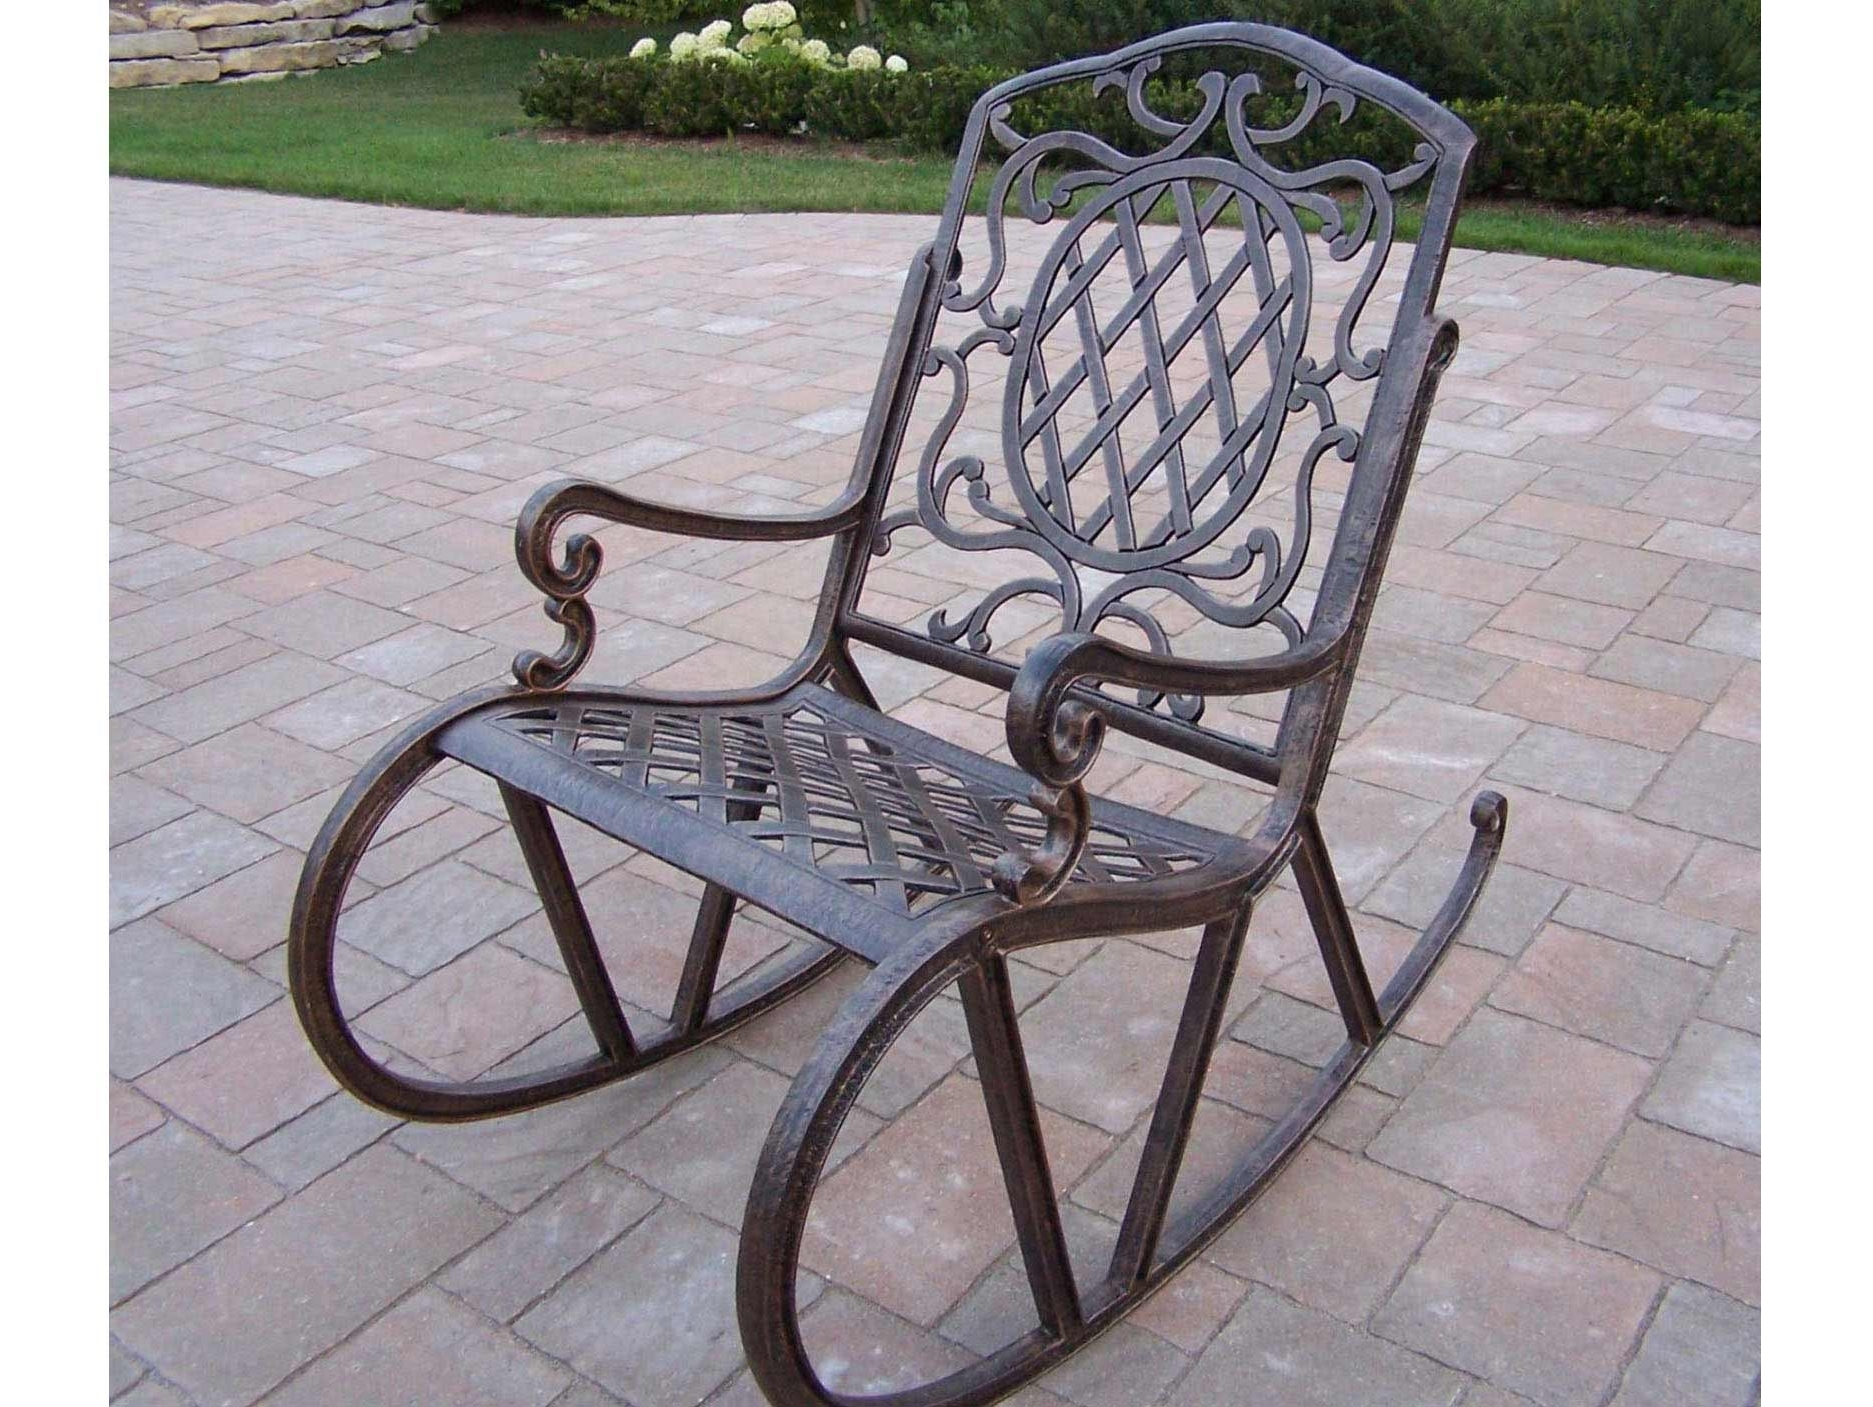 Most Recently Released Wrought Iron Patio Rocking Chairs Inside Shop Davenport Wrought Iron Rocking Chair With Mesh Seat At Lowes (View 9 of 20)